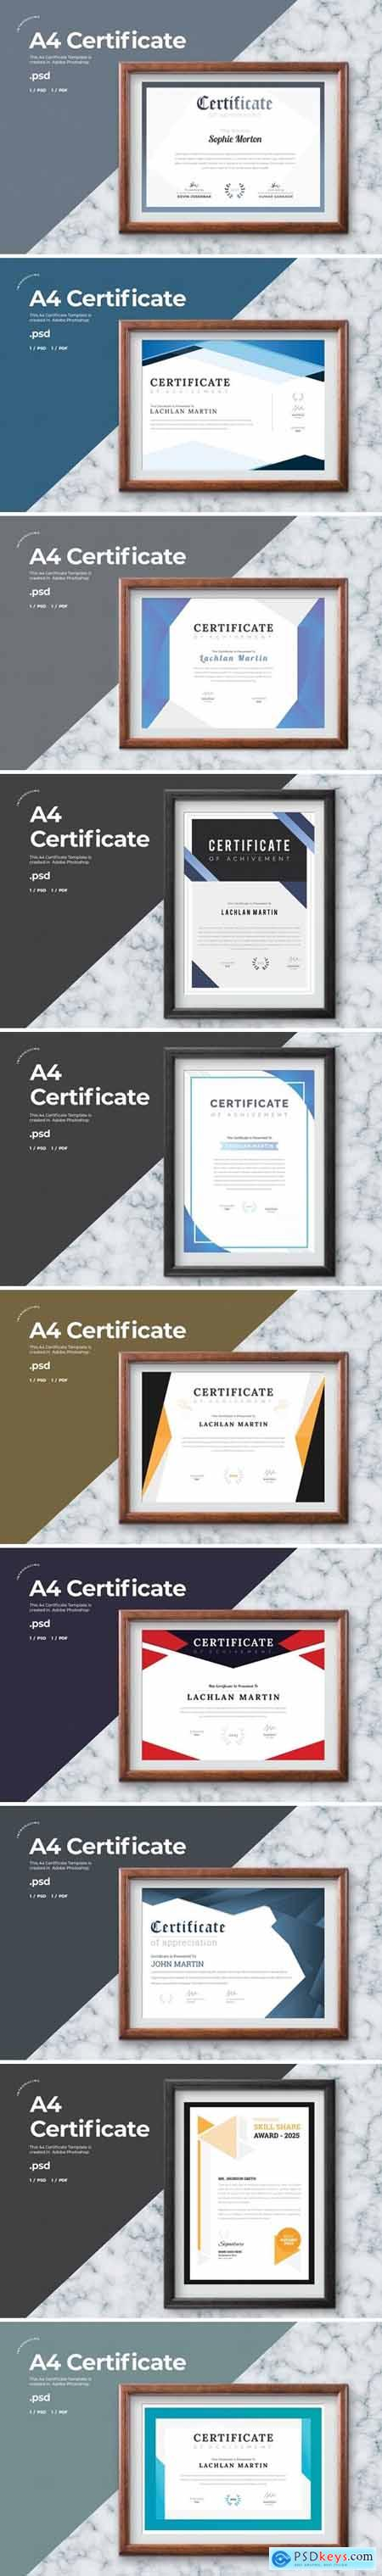 Certificate Template - A4 Bundle